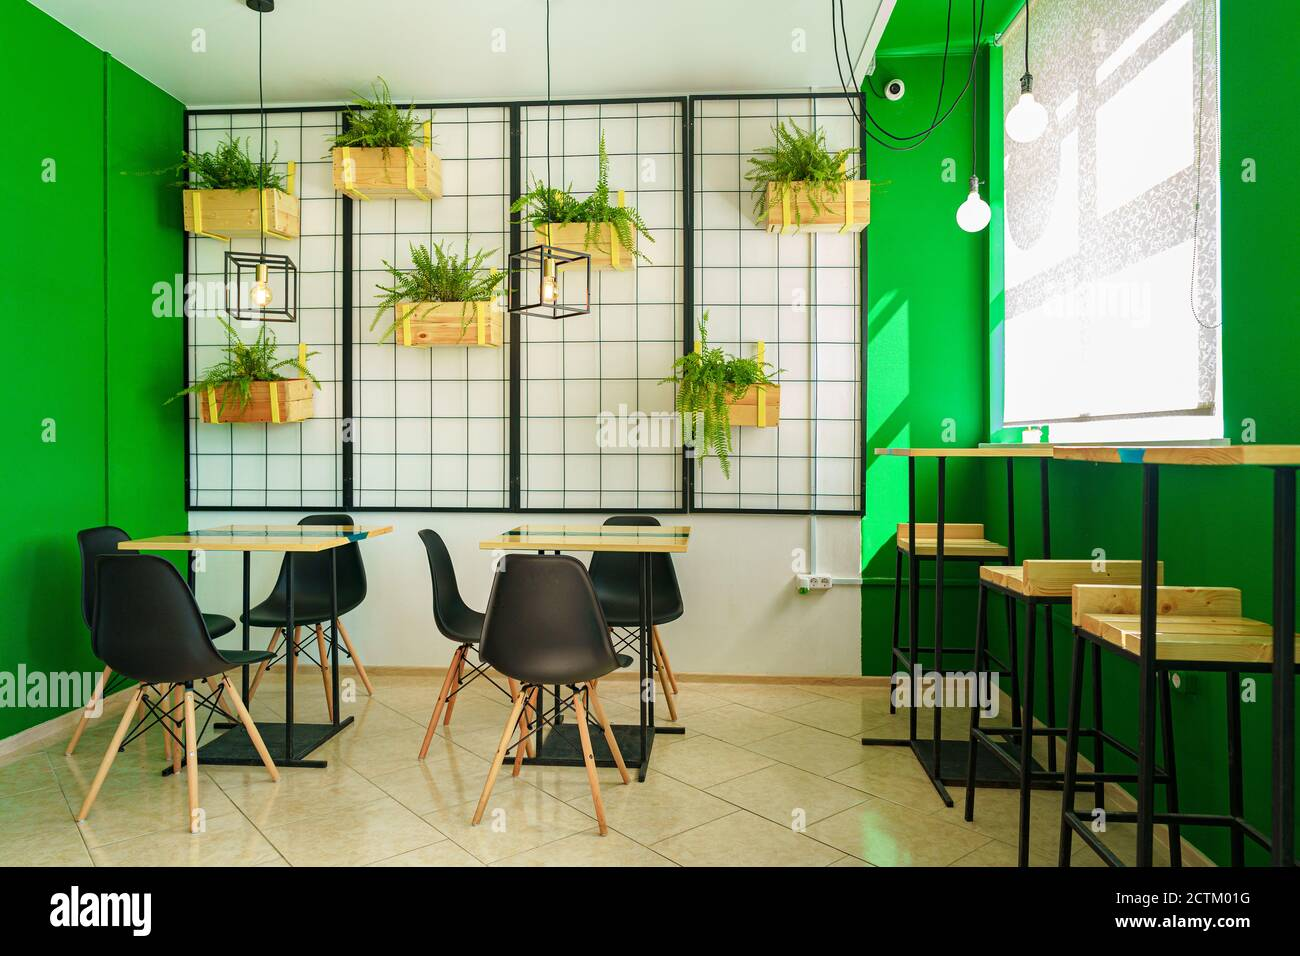 Coffee Shop Interior Background With Tables And Chairs Stock Photo Alamy